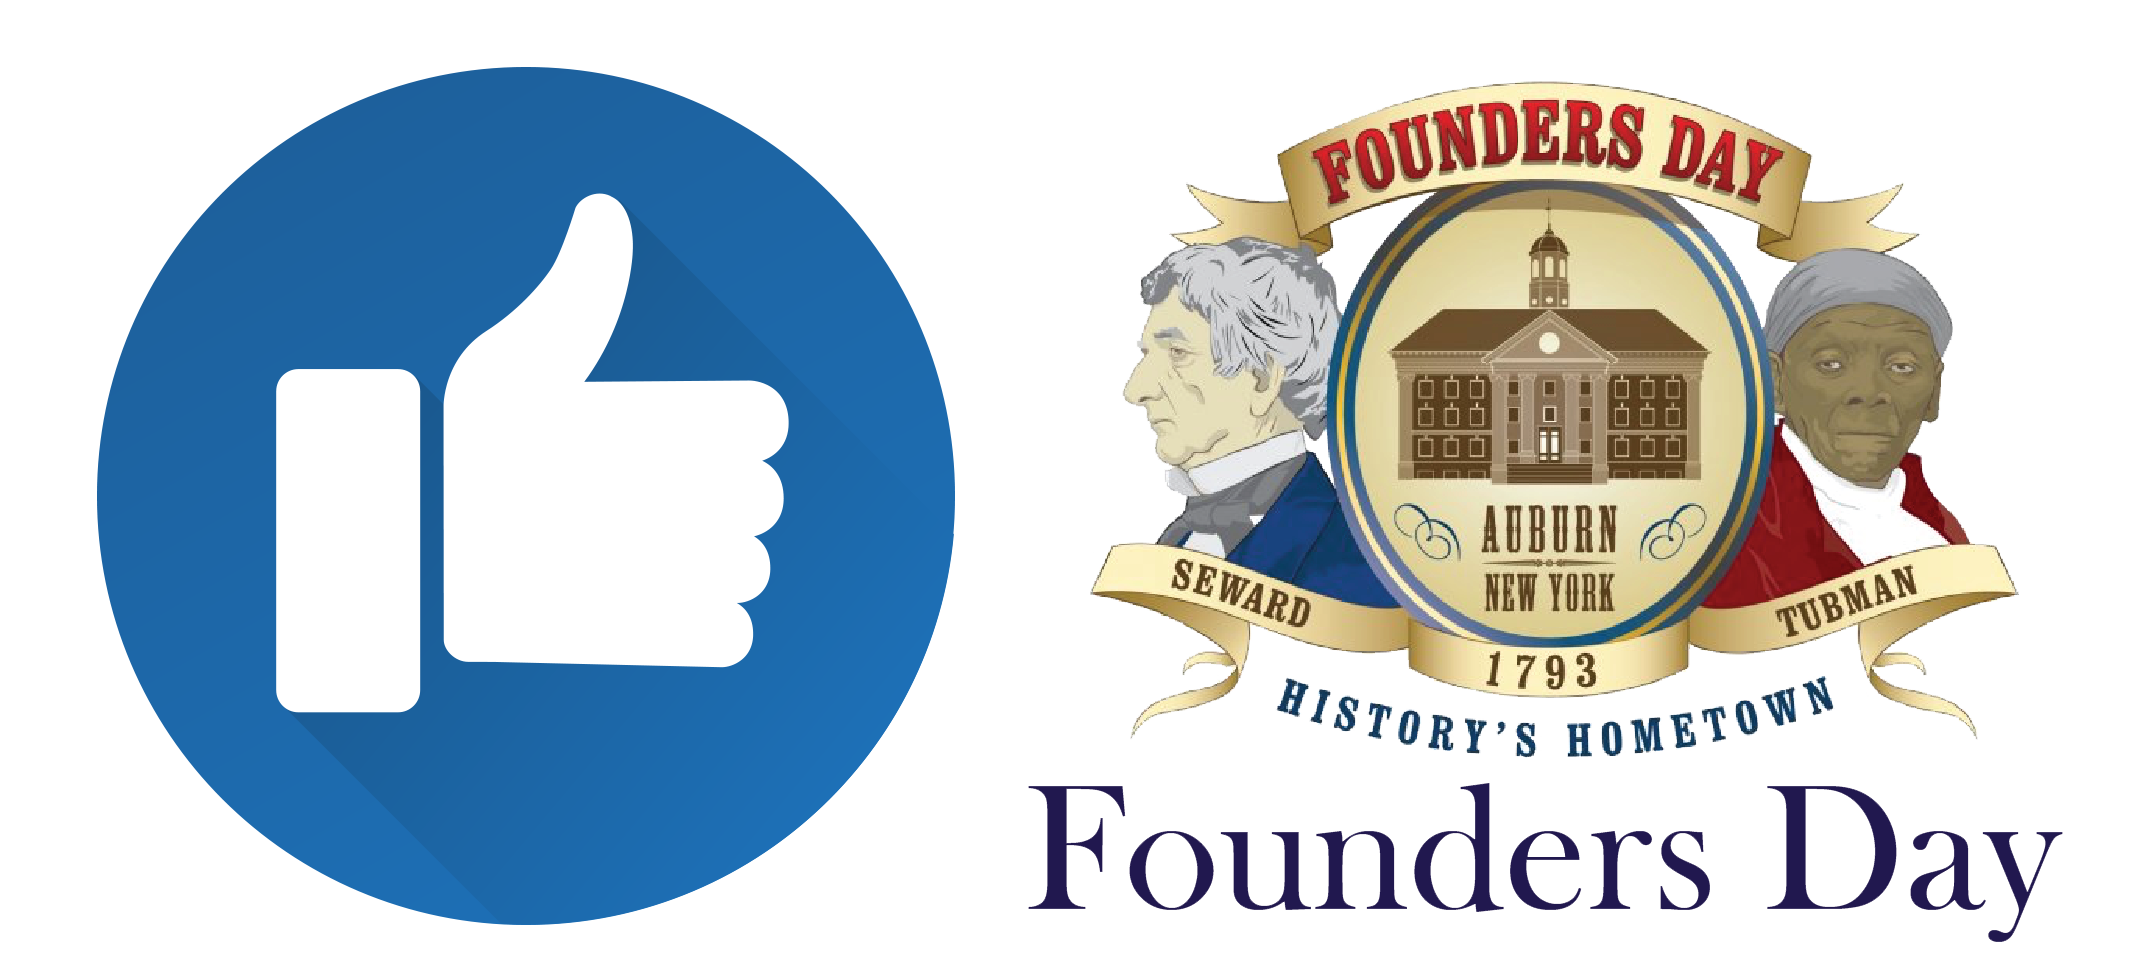 Foundersday_fblogo.png